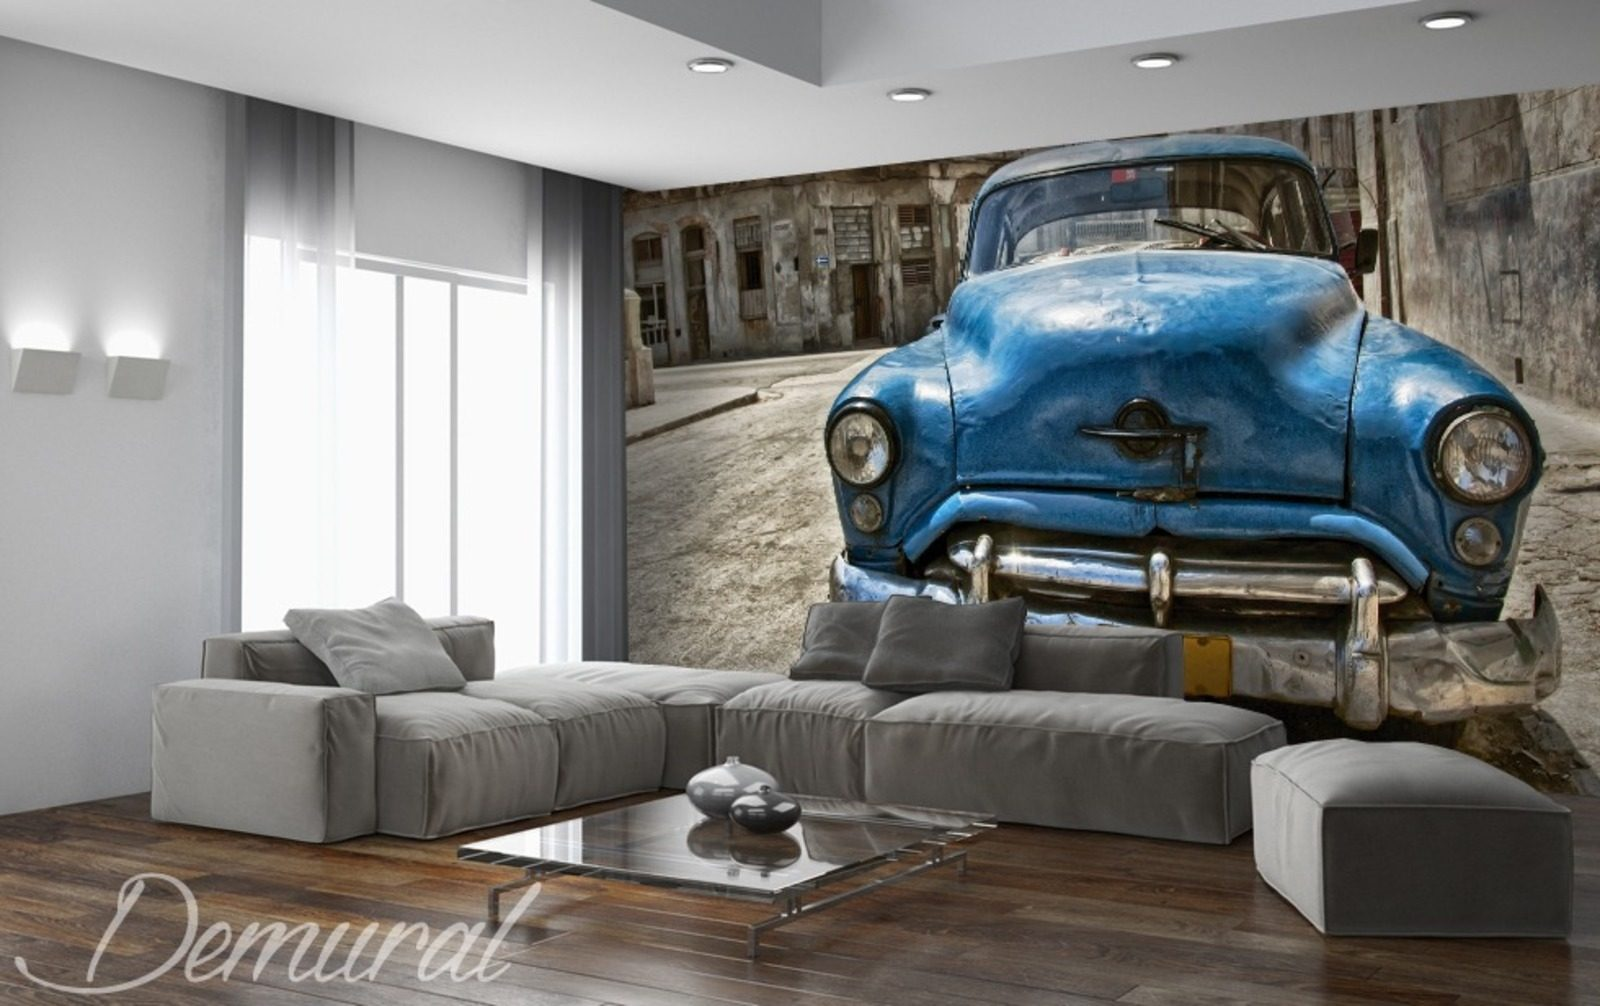 Havana club wall murals and photo wallpapers vehicles for Club de suscriptores mural